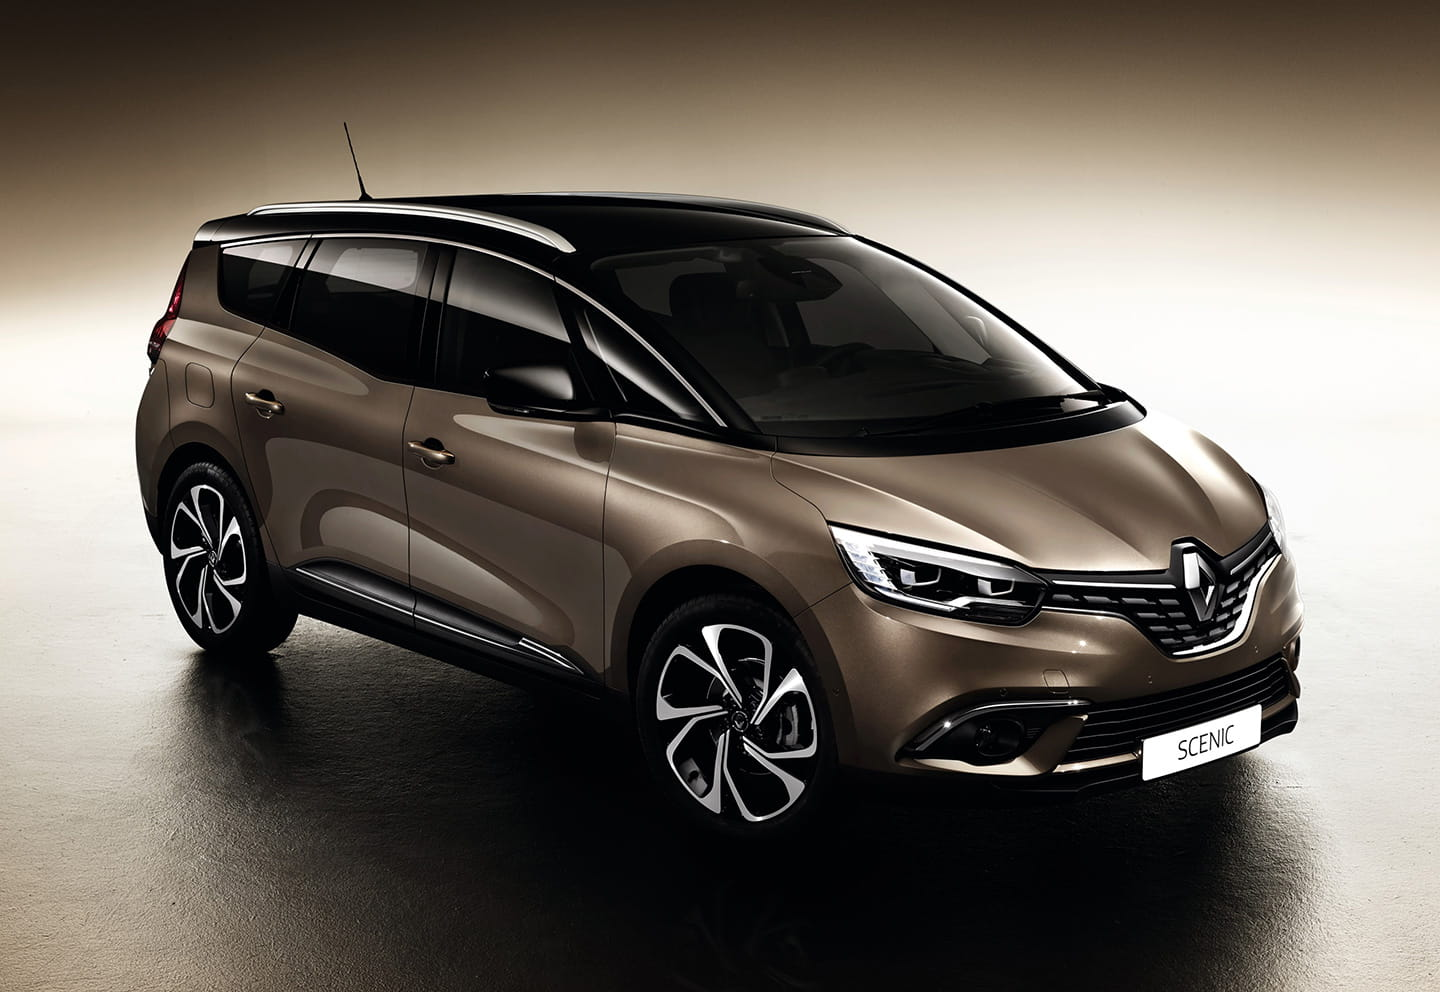 Renault Scenic/Grand Scenic 2017 Review, Specification, and Price